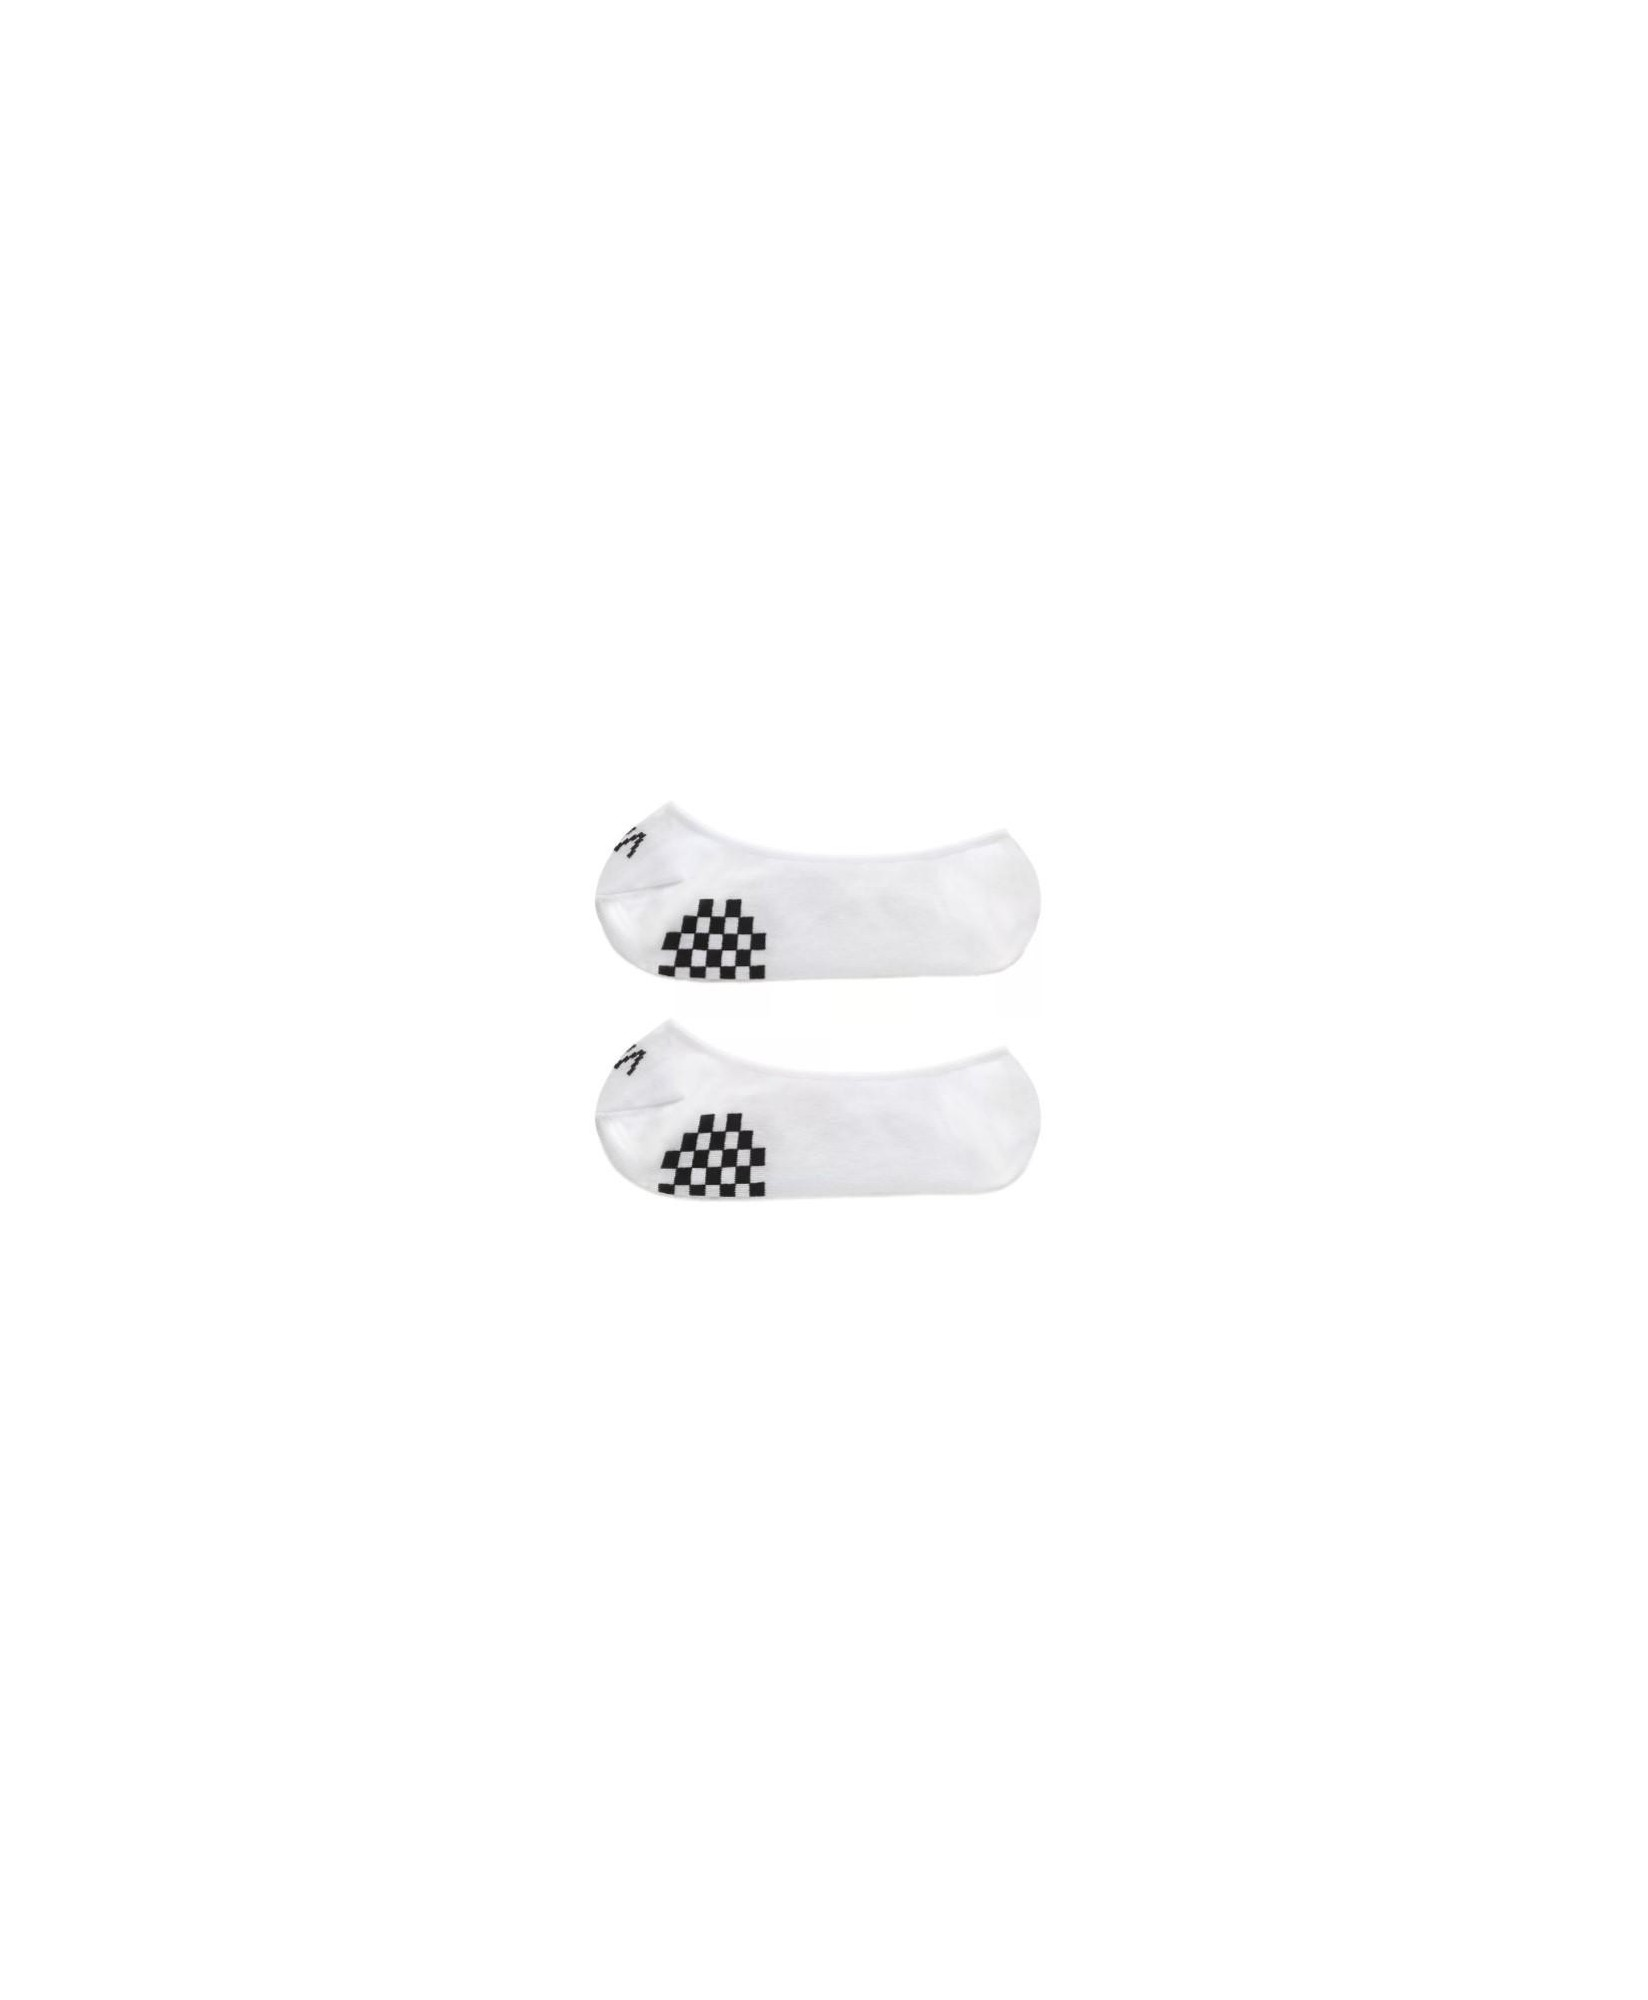 CALCETINES INVISIBLES GIRLY (2 PARES) CALCETINES INVISIBLES GIRLY (2 PARES)